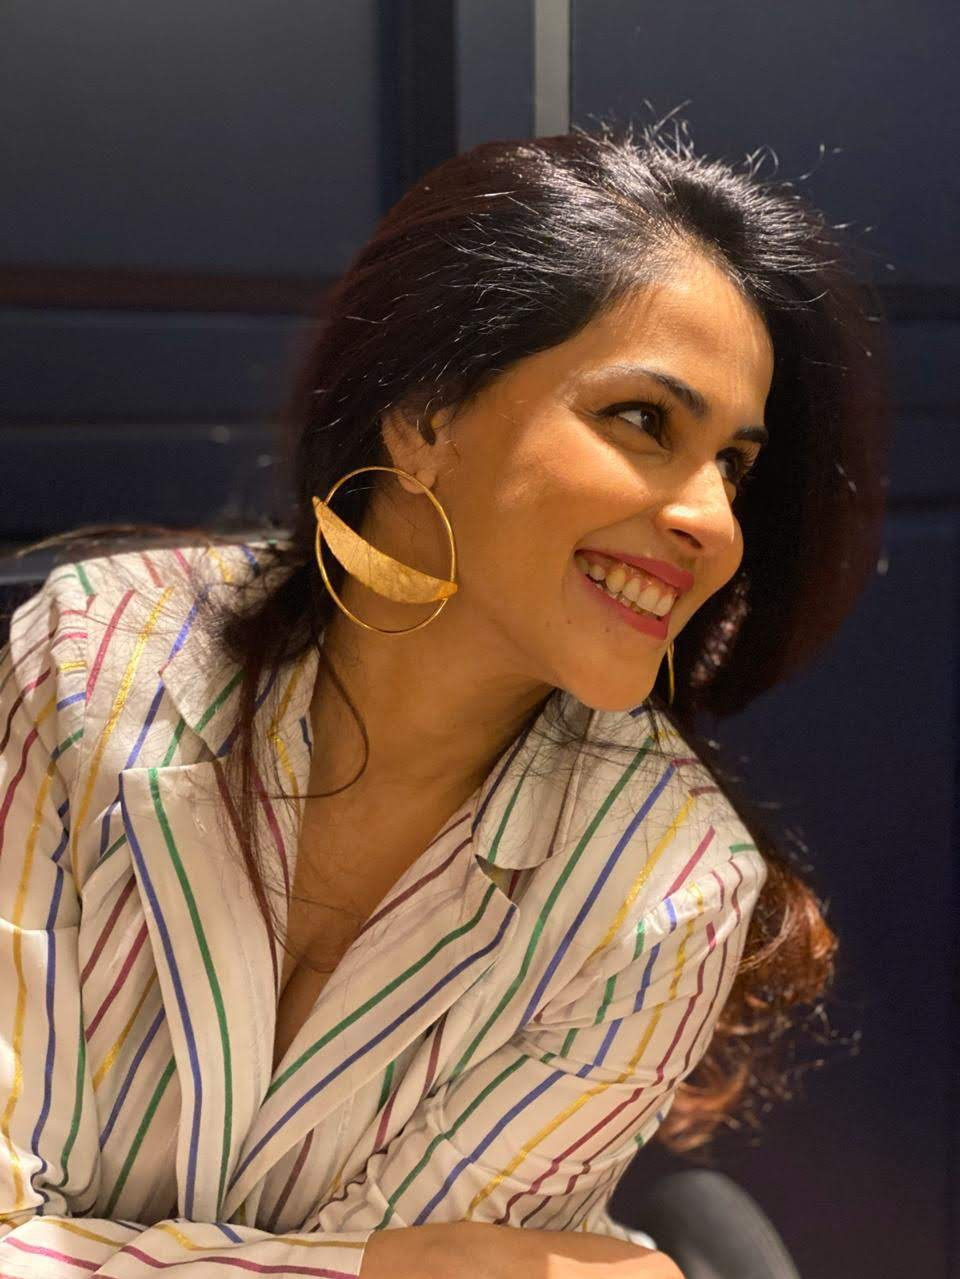 Genelia D'souza in One nought one one earrings for the screening of the film Chhapaak